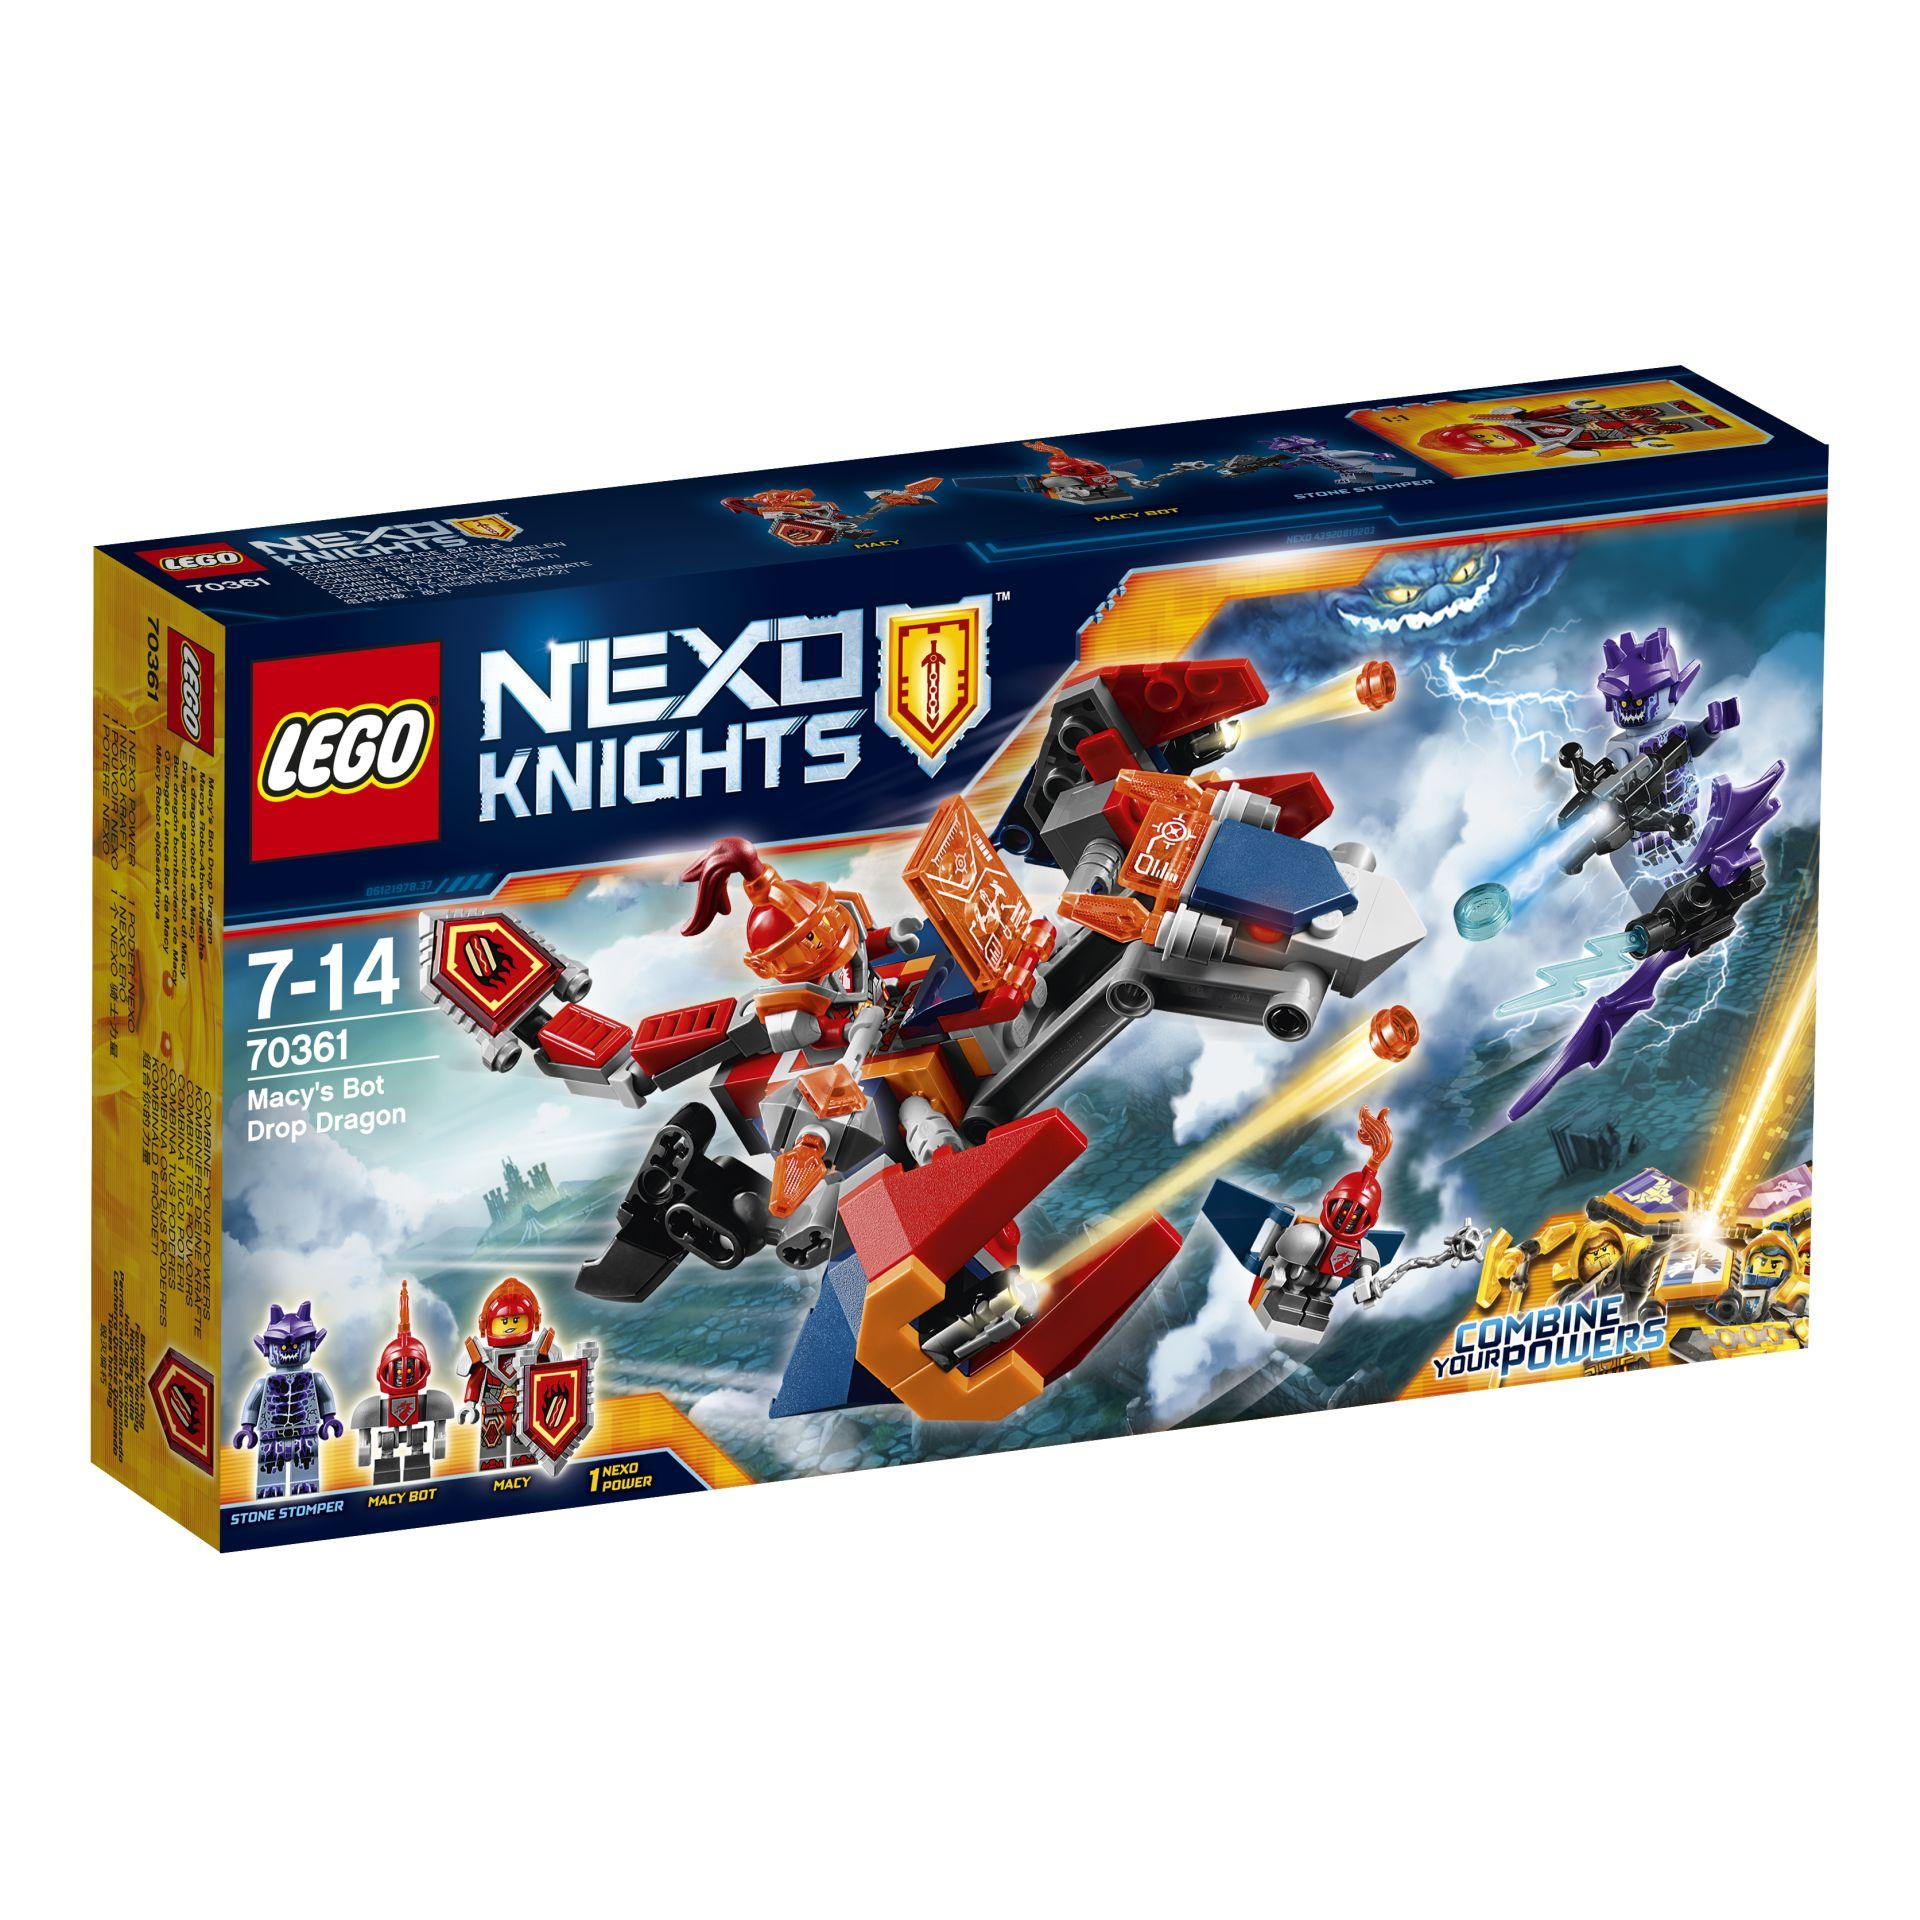 Lego Nexo Knights Macys Bot Drop Dragon